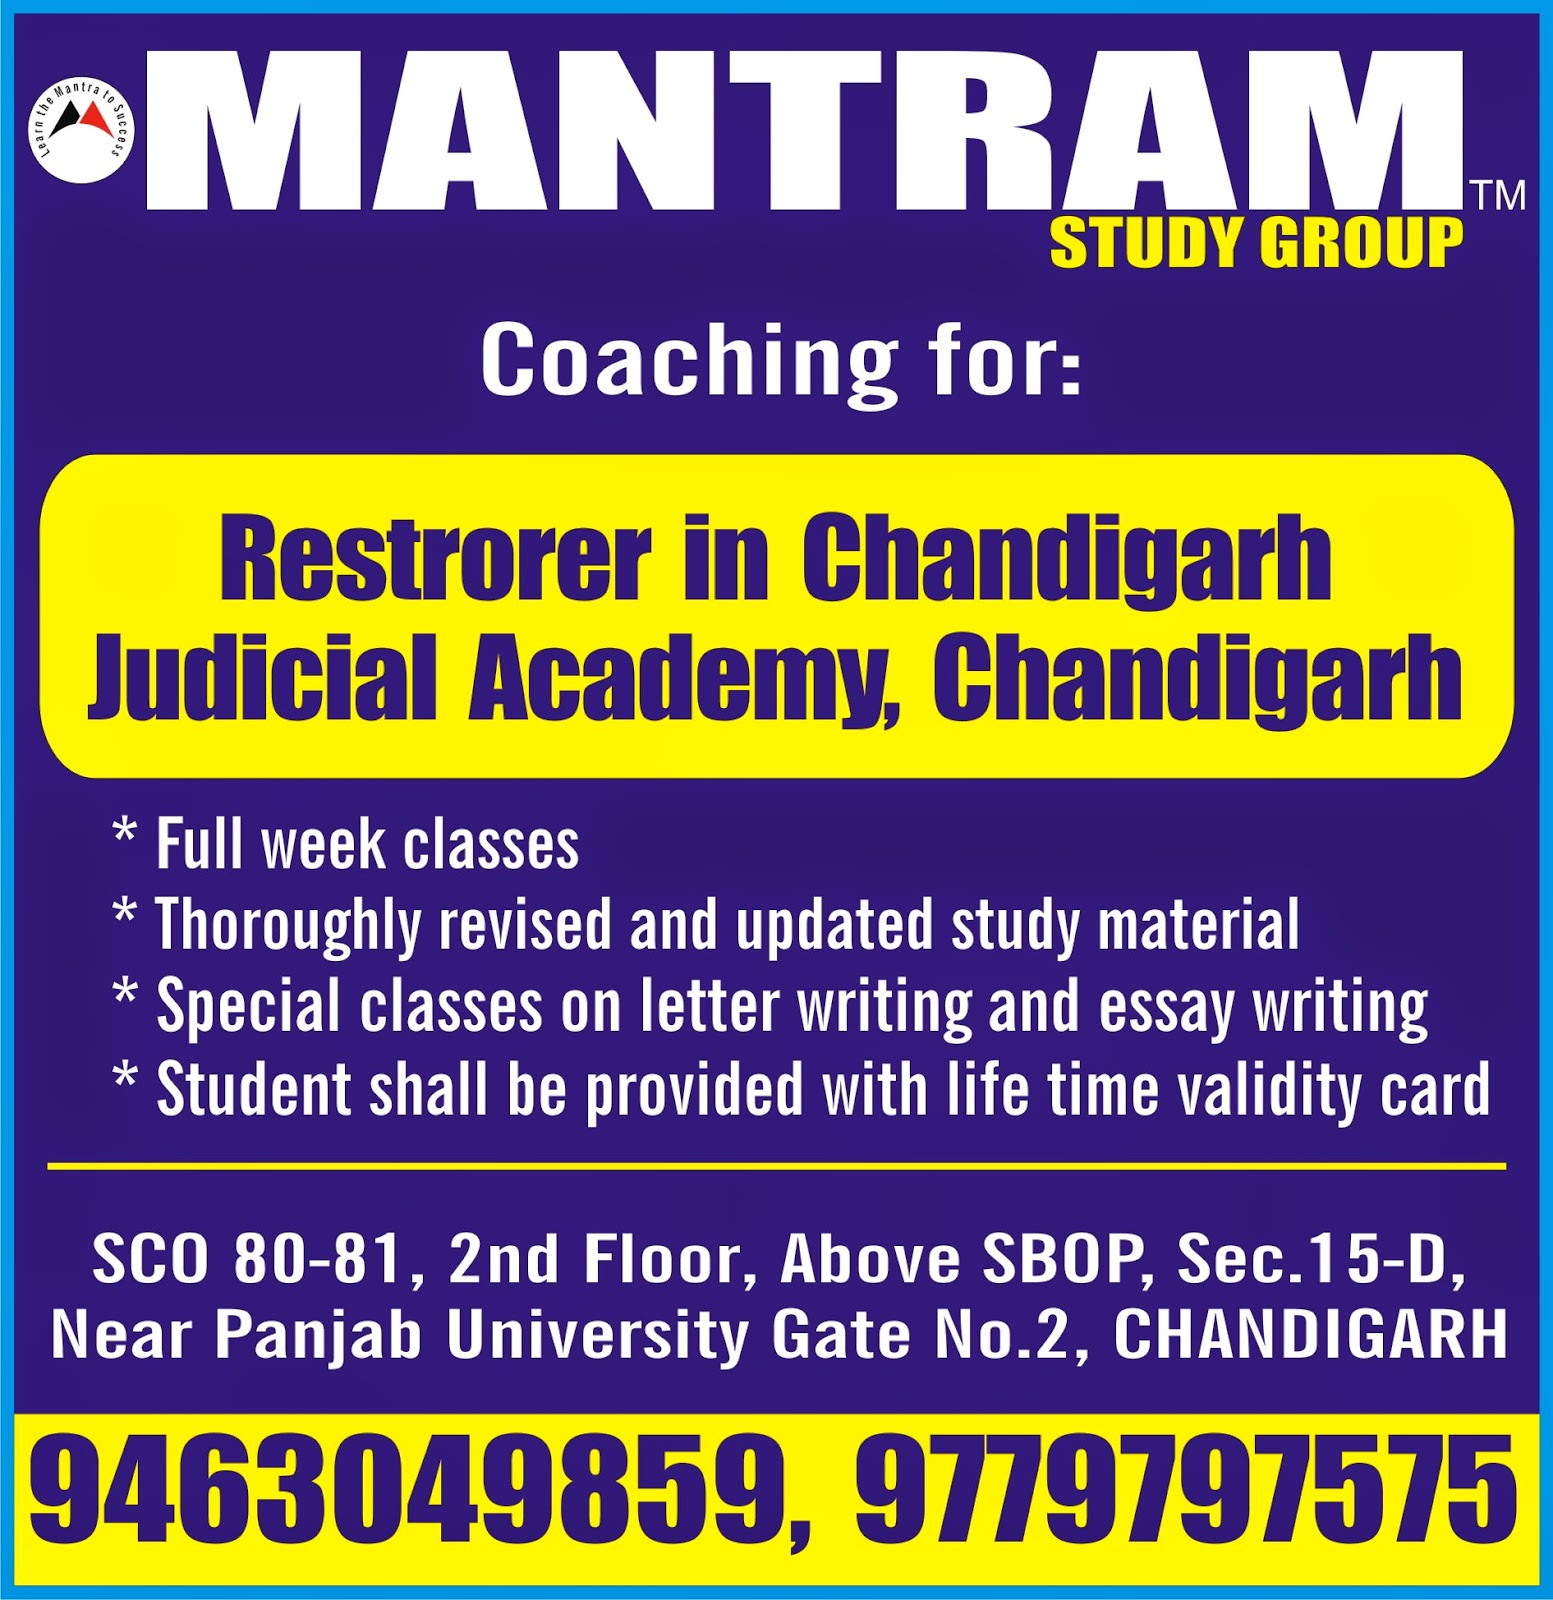 mantram study group latest govt jobs in  expertise coaching for restorer chandigarh judicial academy sector 43 chandigarh by mantram study group in chandigarh